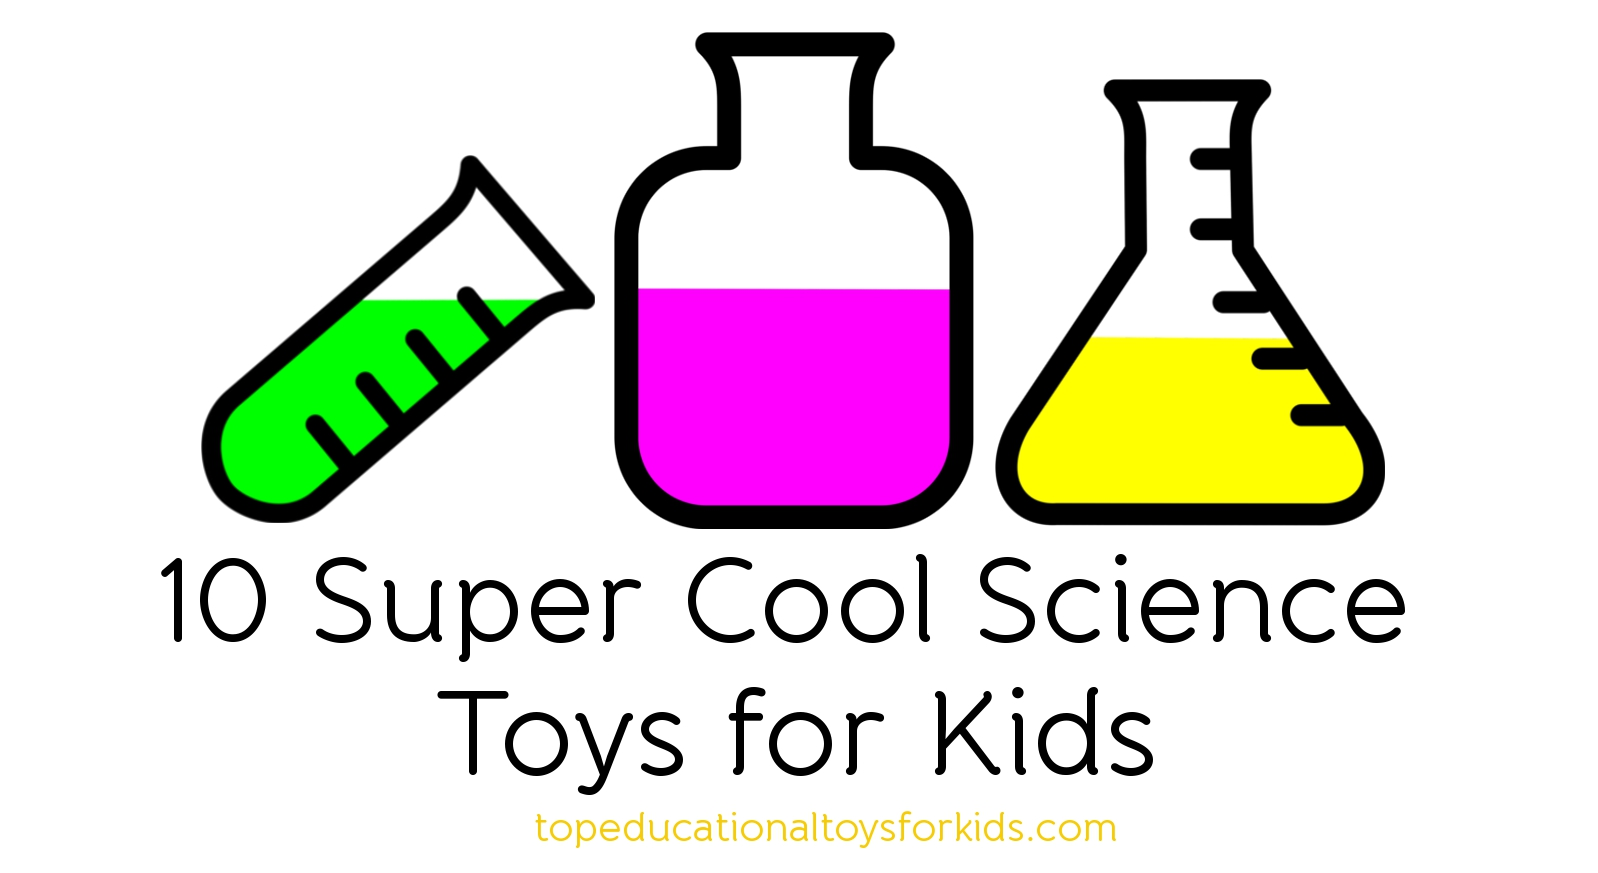 Super Cool Science Toys for Kids